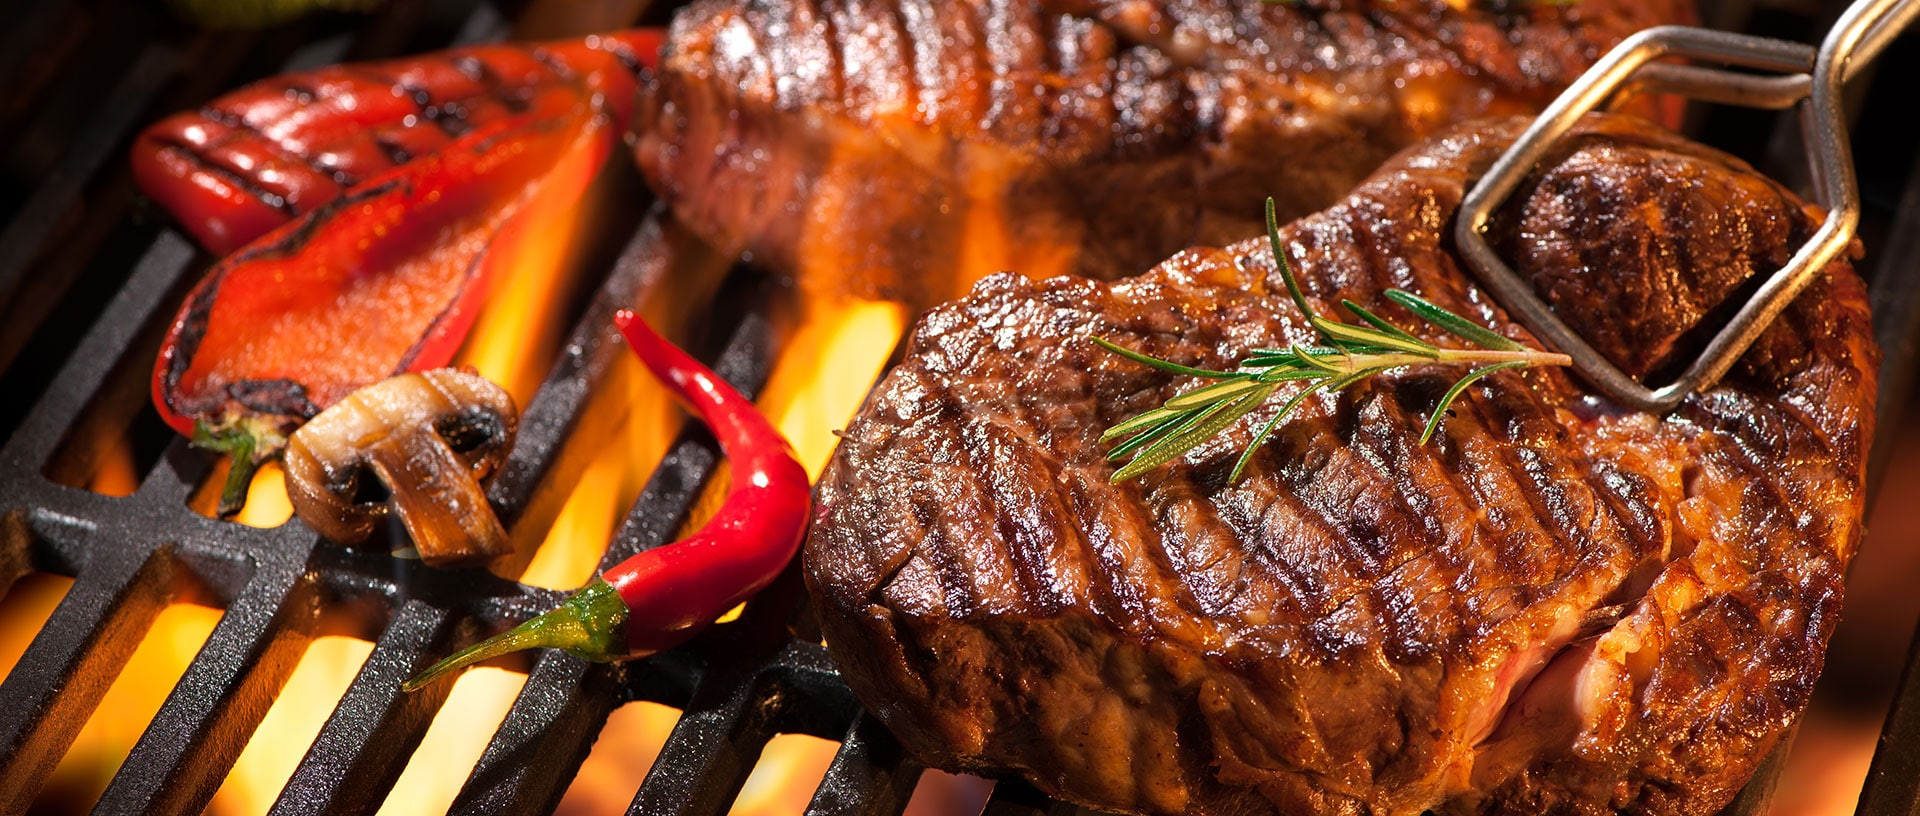 License to Grill - Steak offers at OAK Grill Marbella